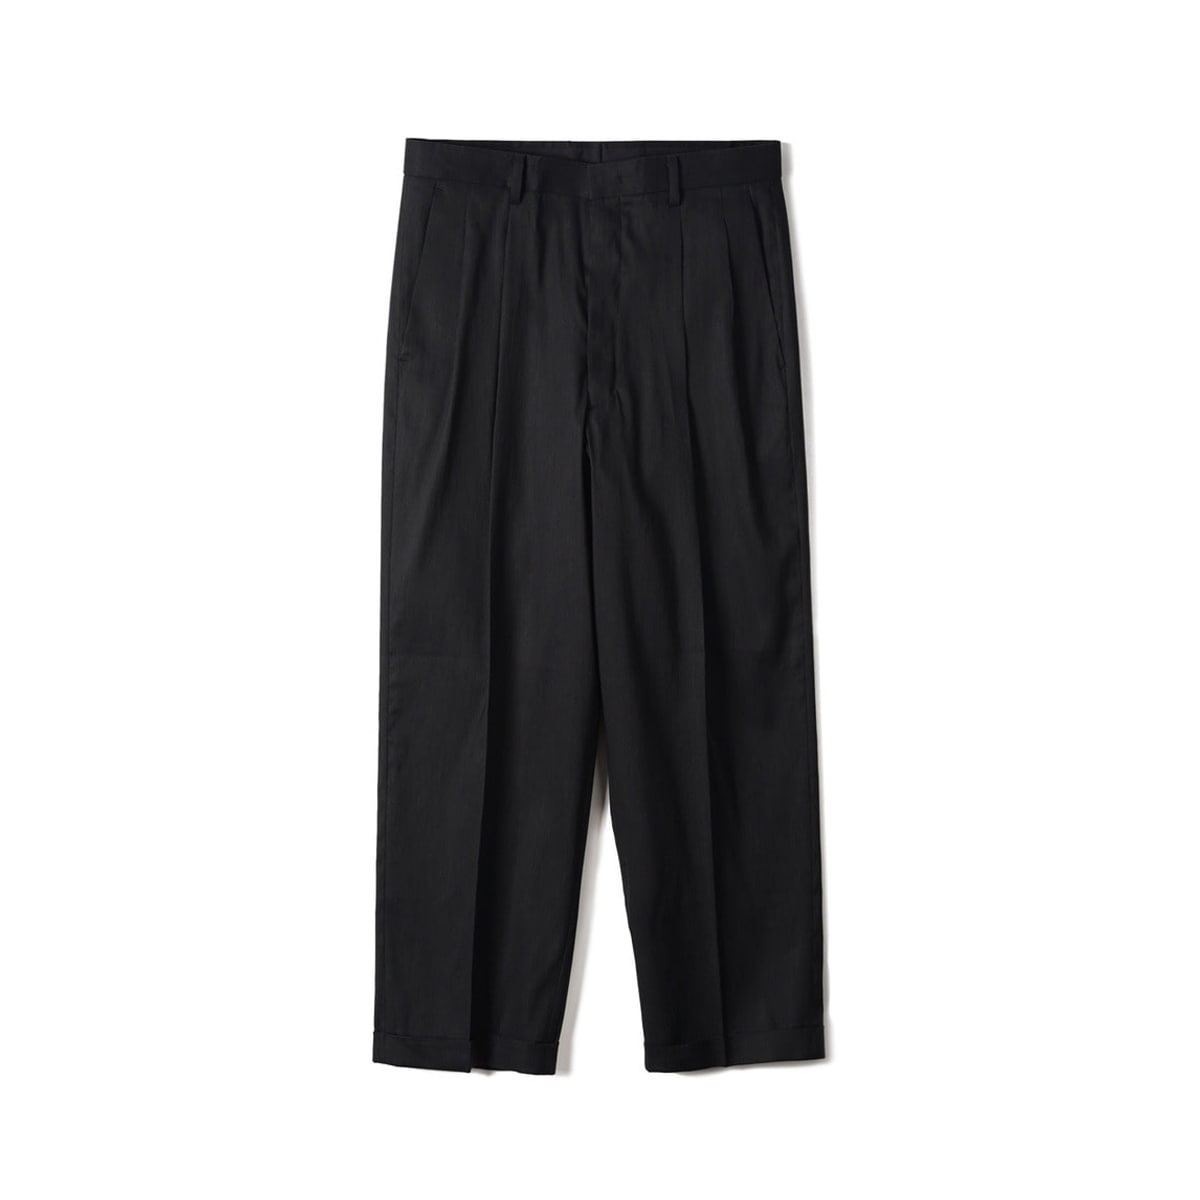 [OOPARTS] TWO PLEAT CLASSIC PANTS 'BLACK'